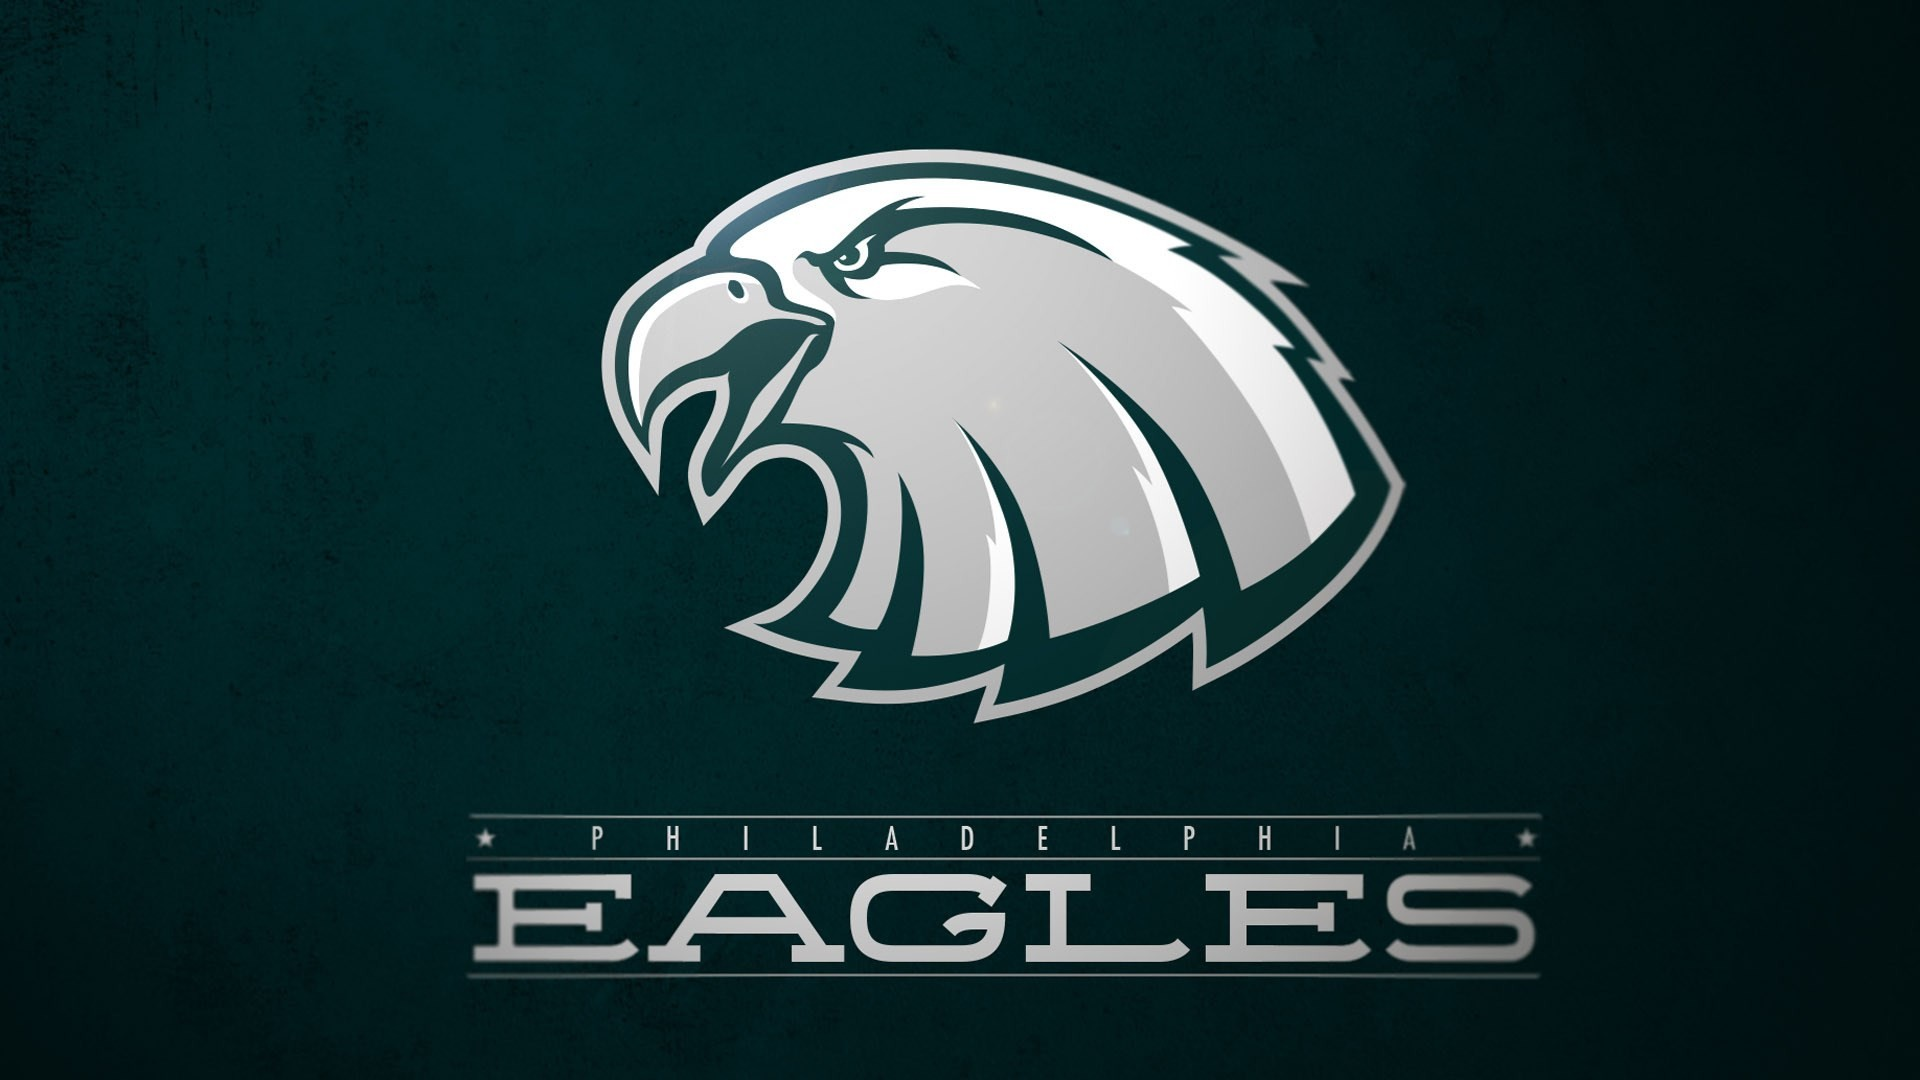 1920x1080 Philadelphia Eagles Wallpapers HD Widescreen - WallpaperSafari